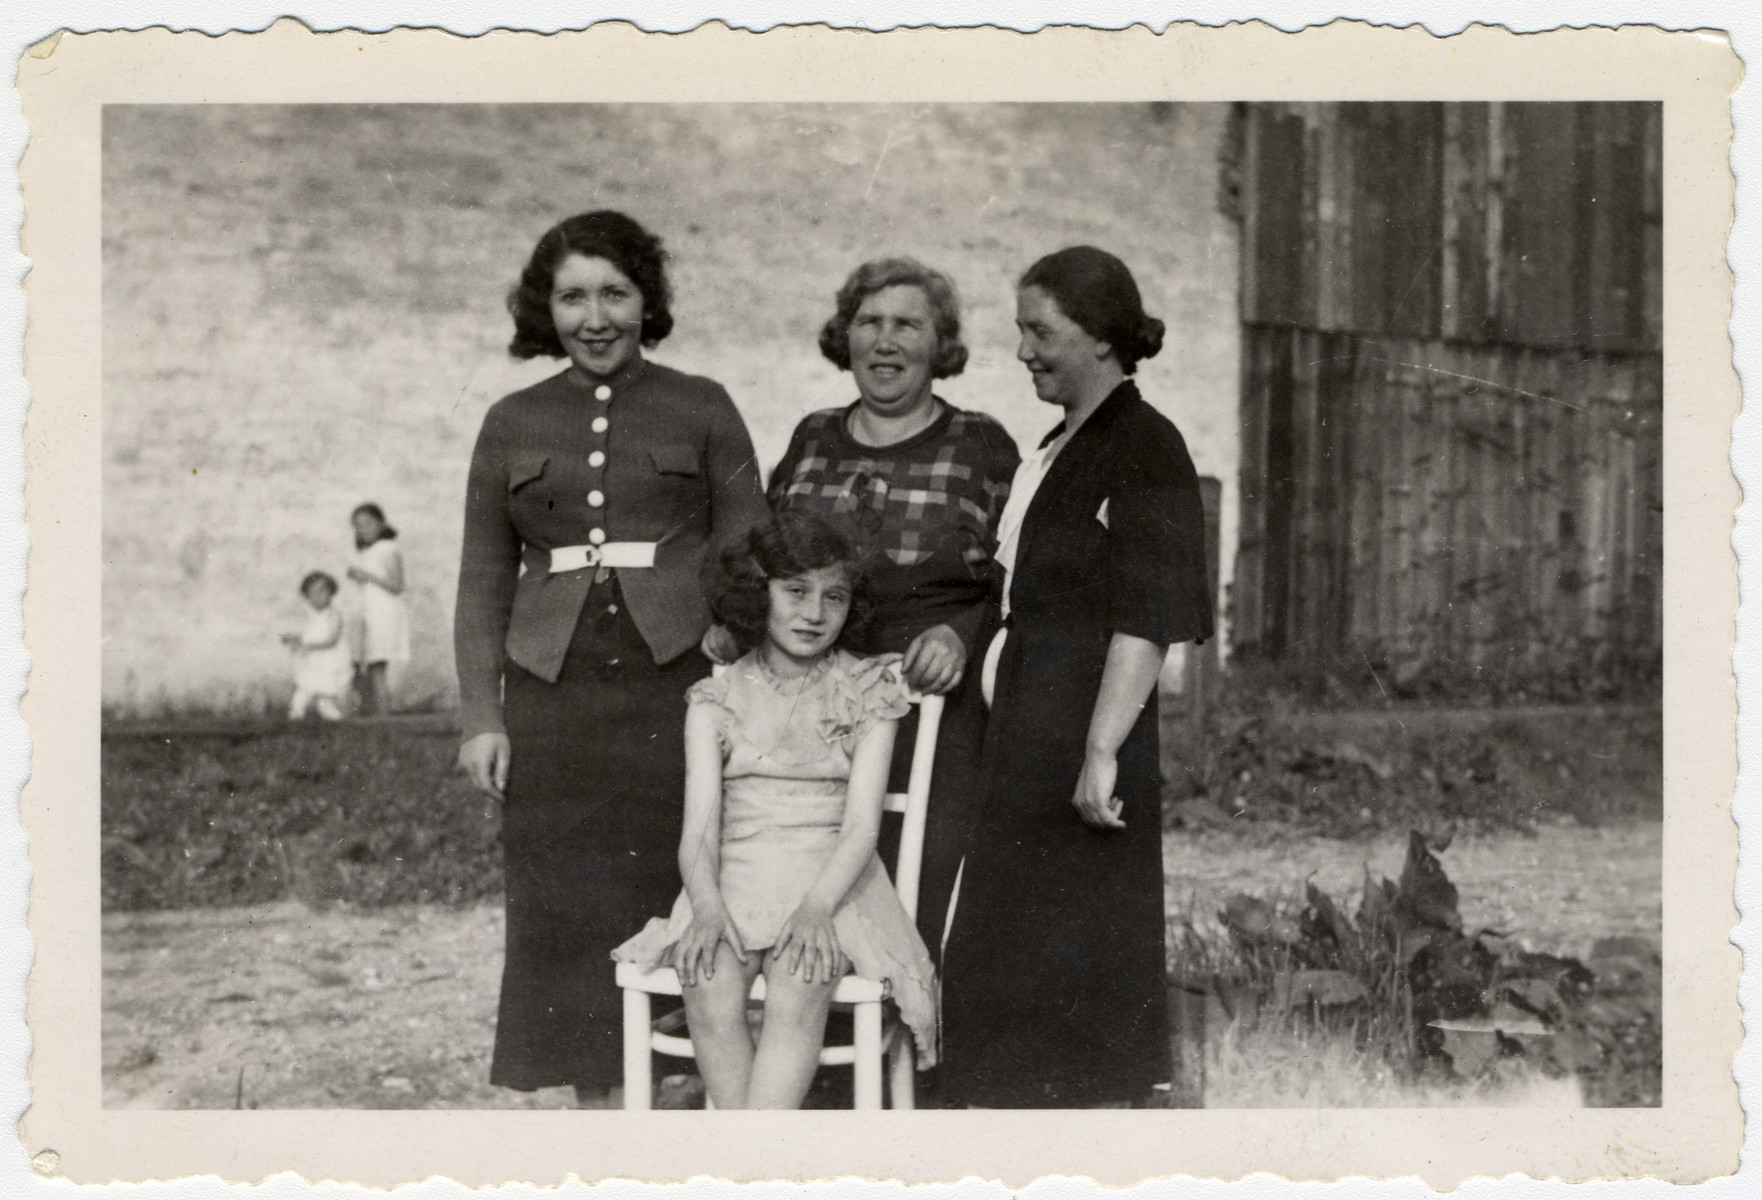 Group portrait Cesia Ritter (née Honig) pictured seated with mother, Malka Honig on right and two aunts to the left.